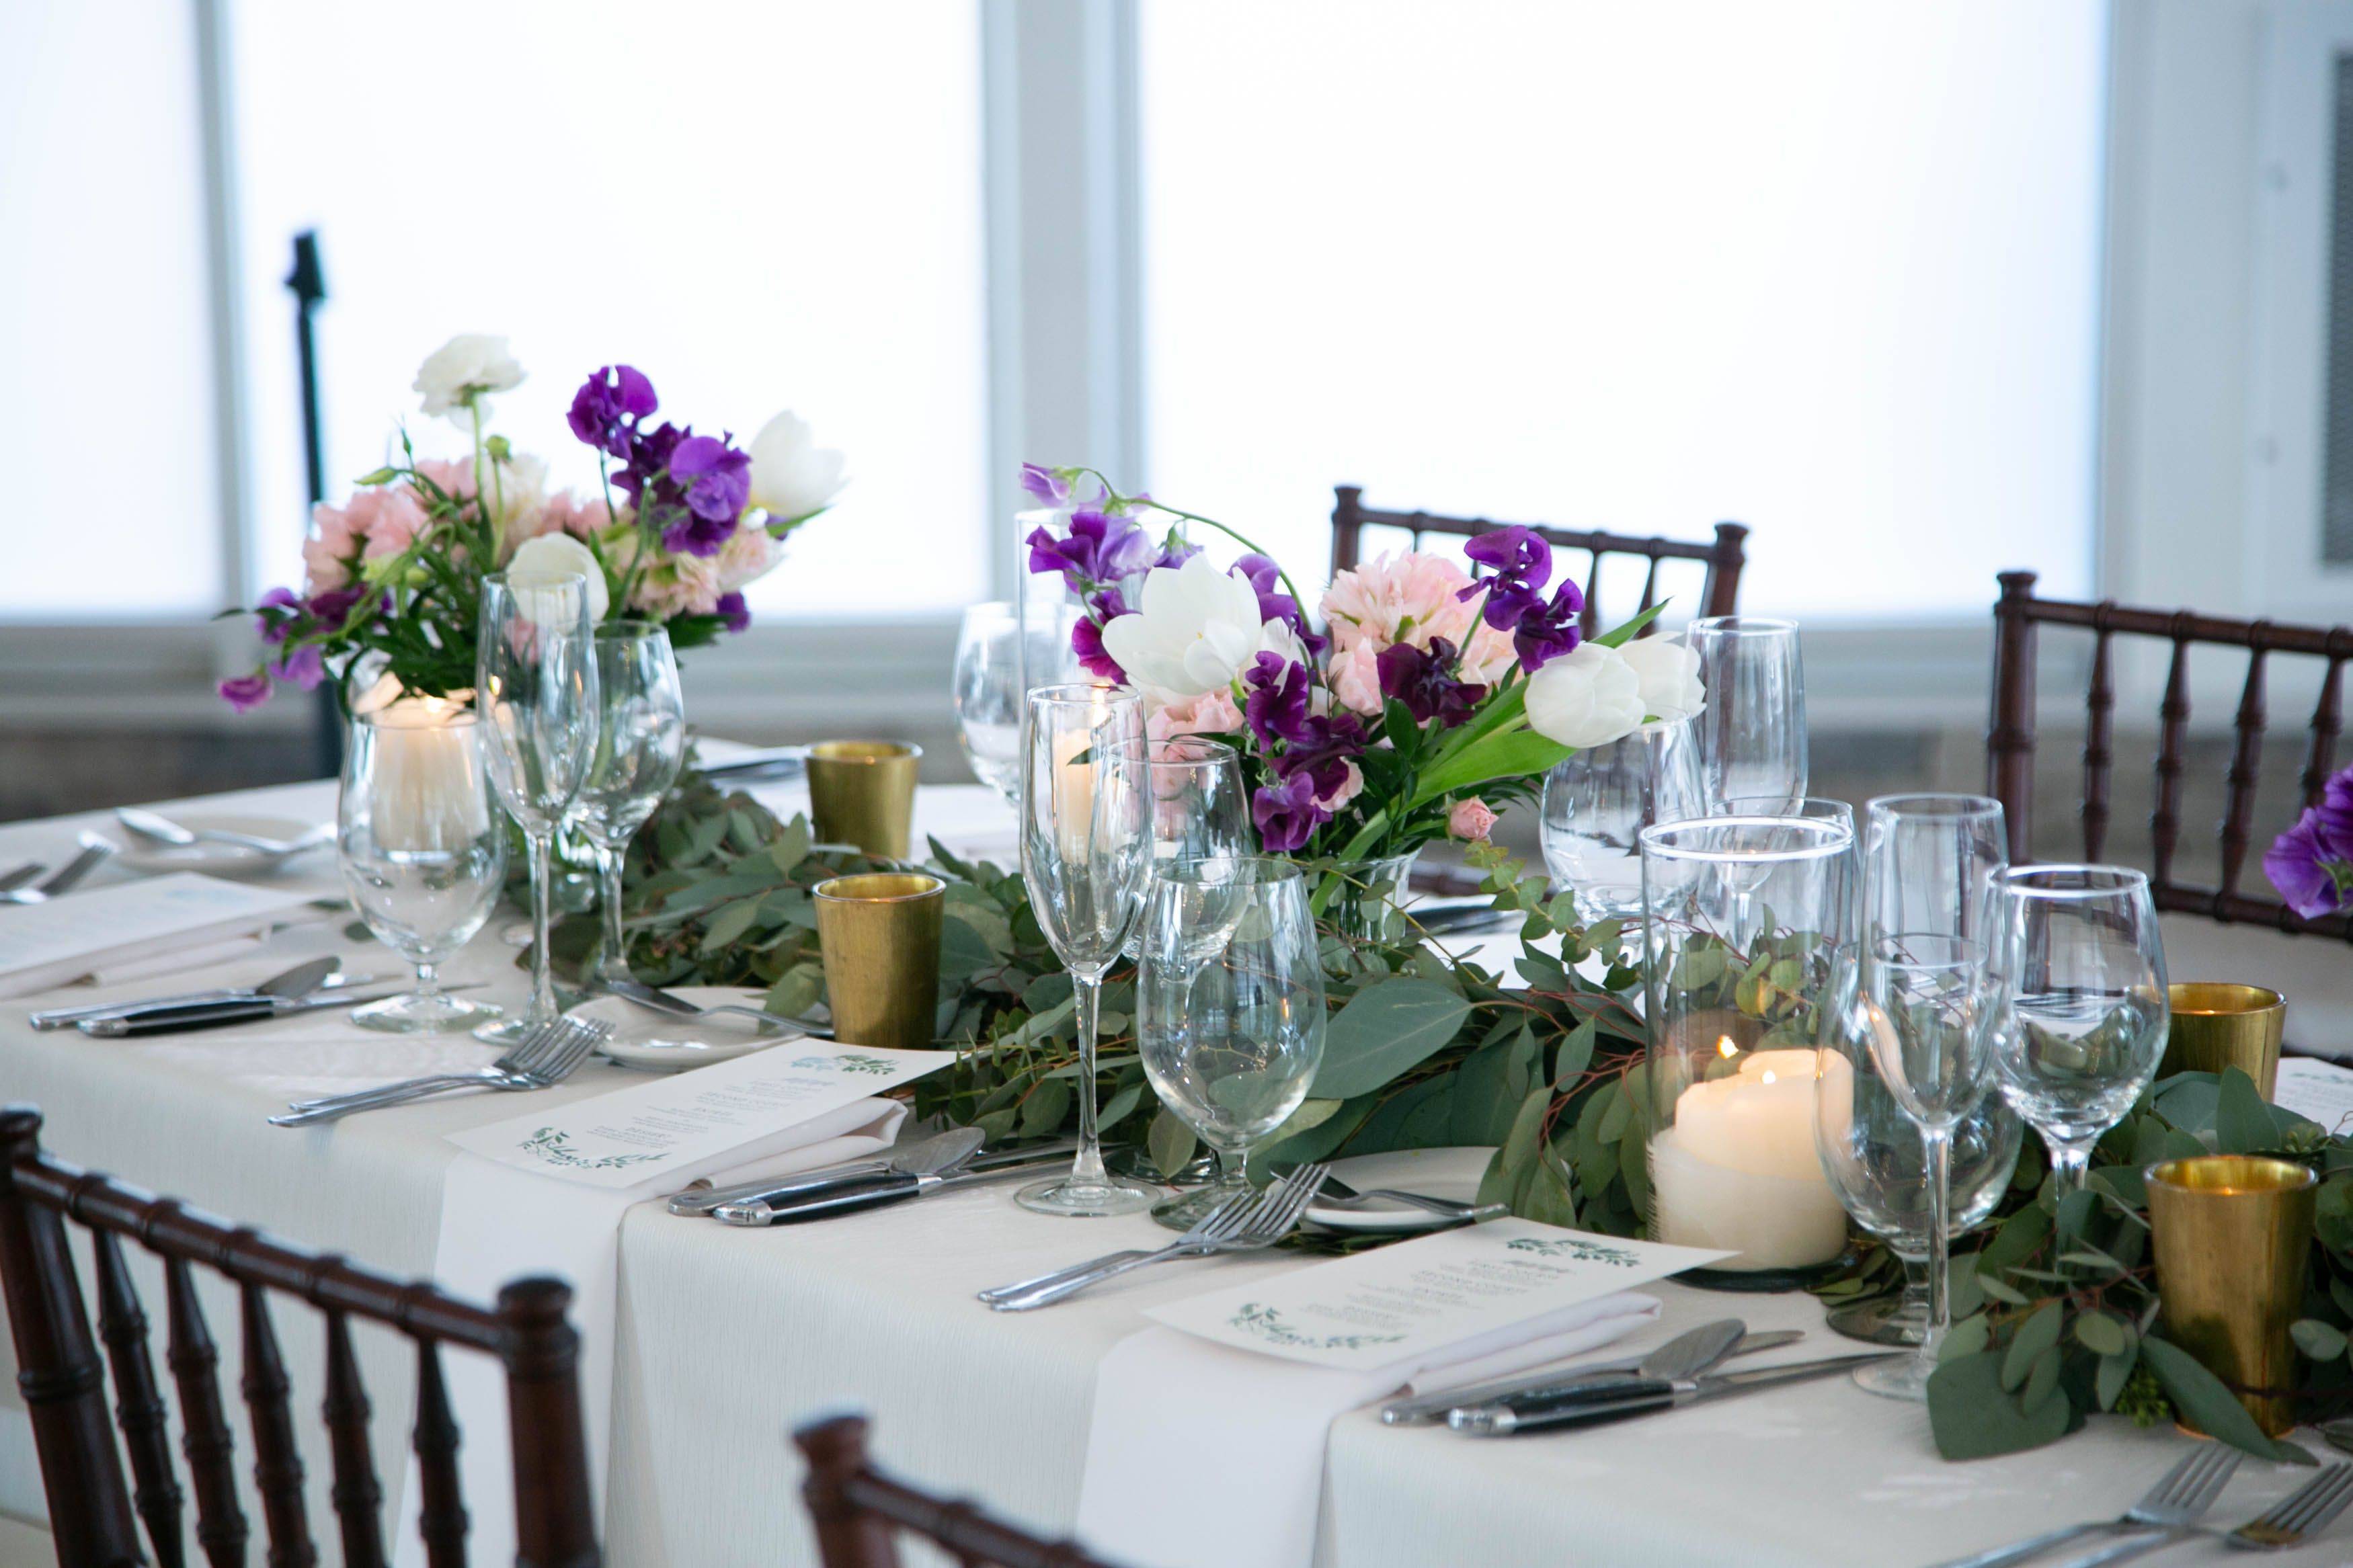 Snow Crest Table Linen In 2020 Wedding Table Linens Table Linens Wedding Table